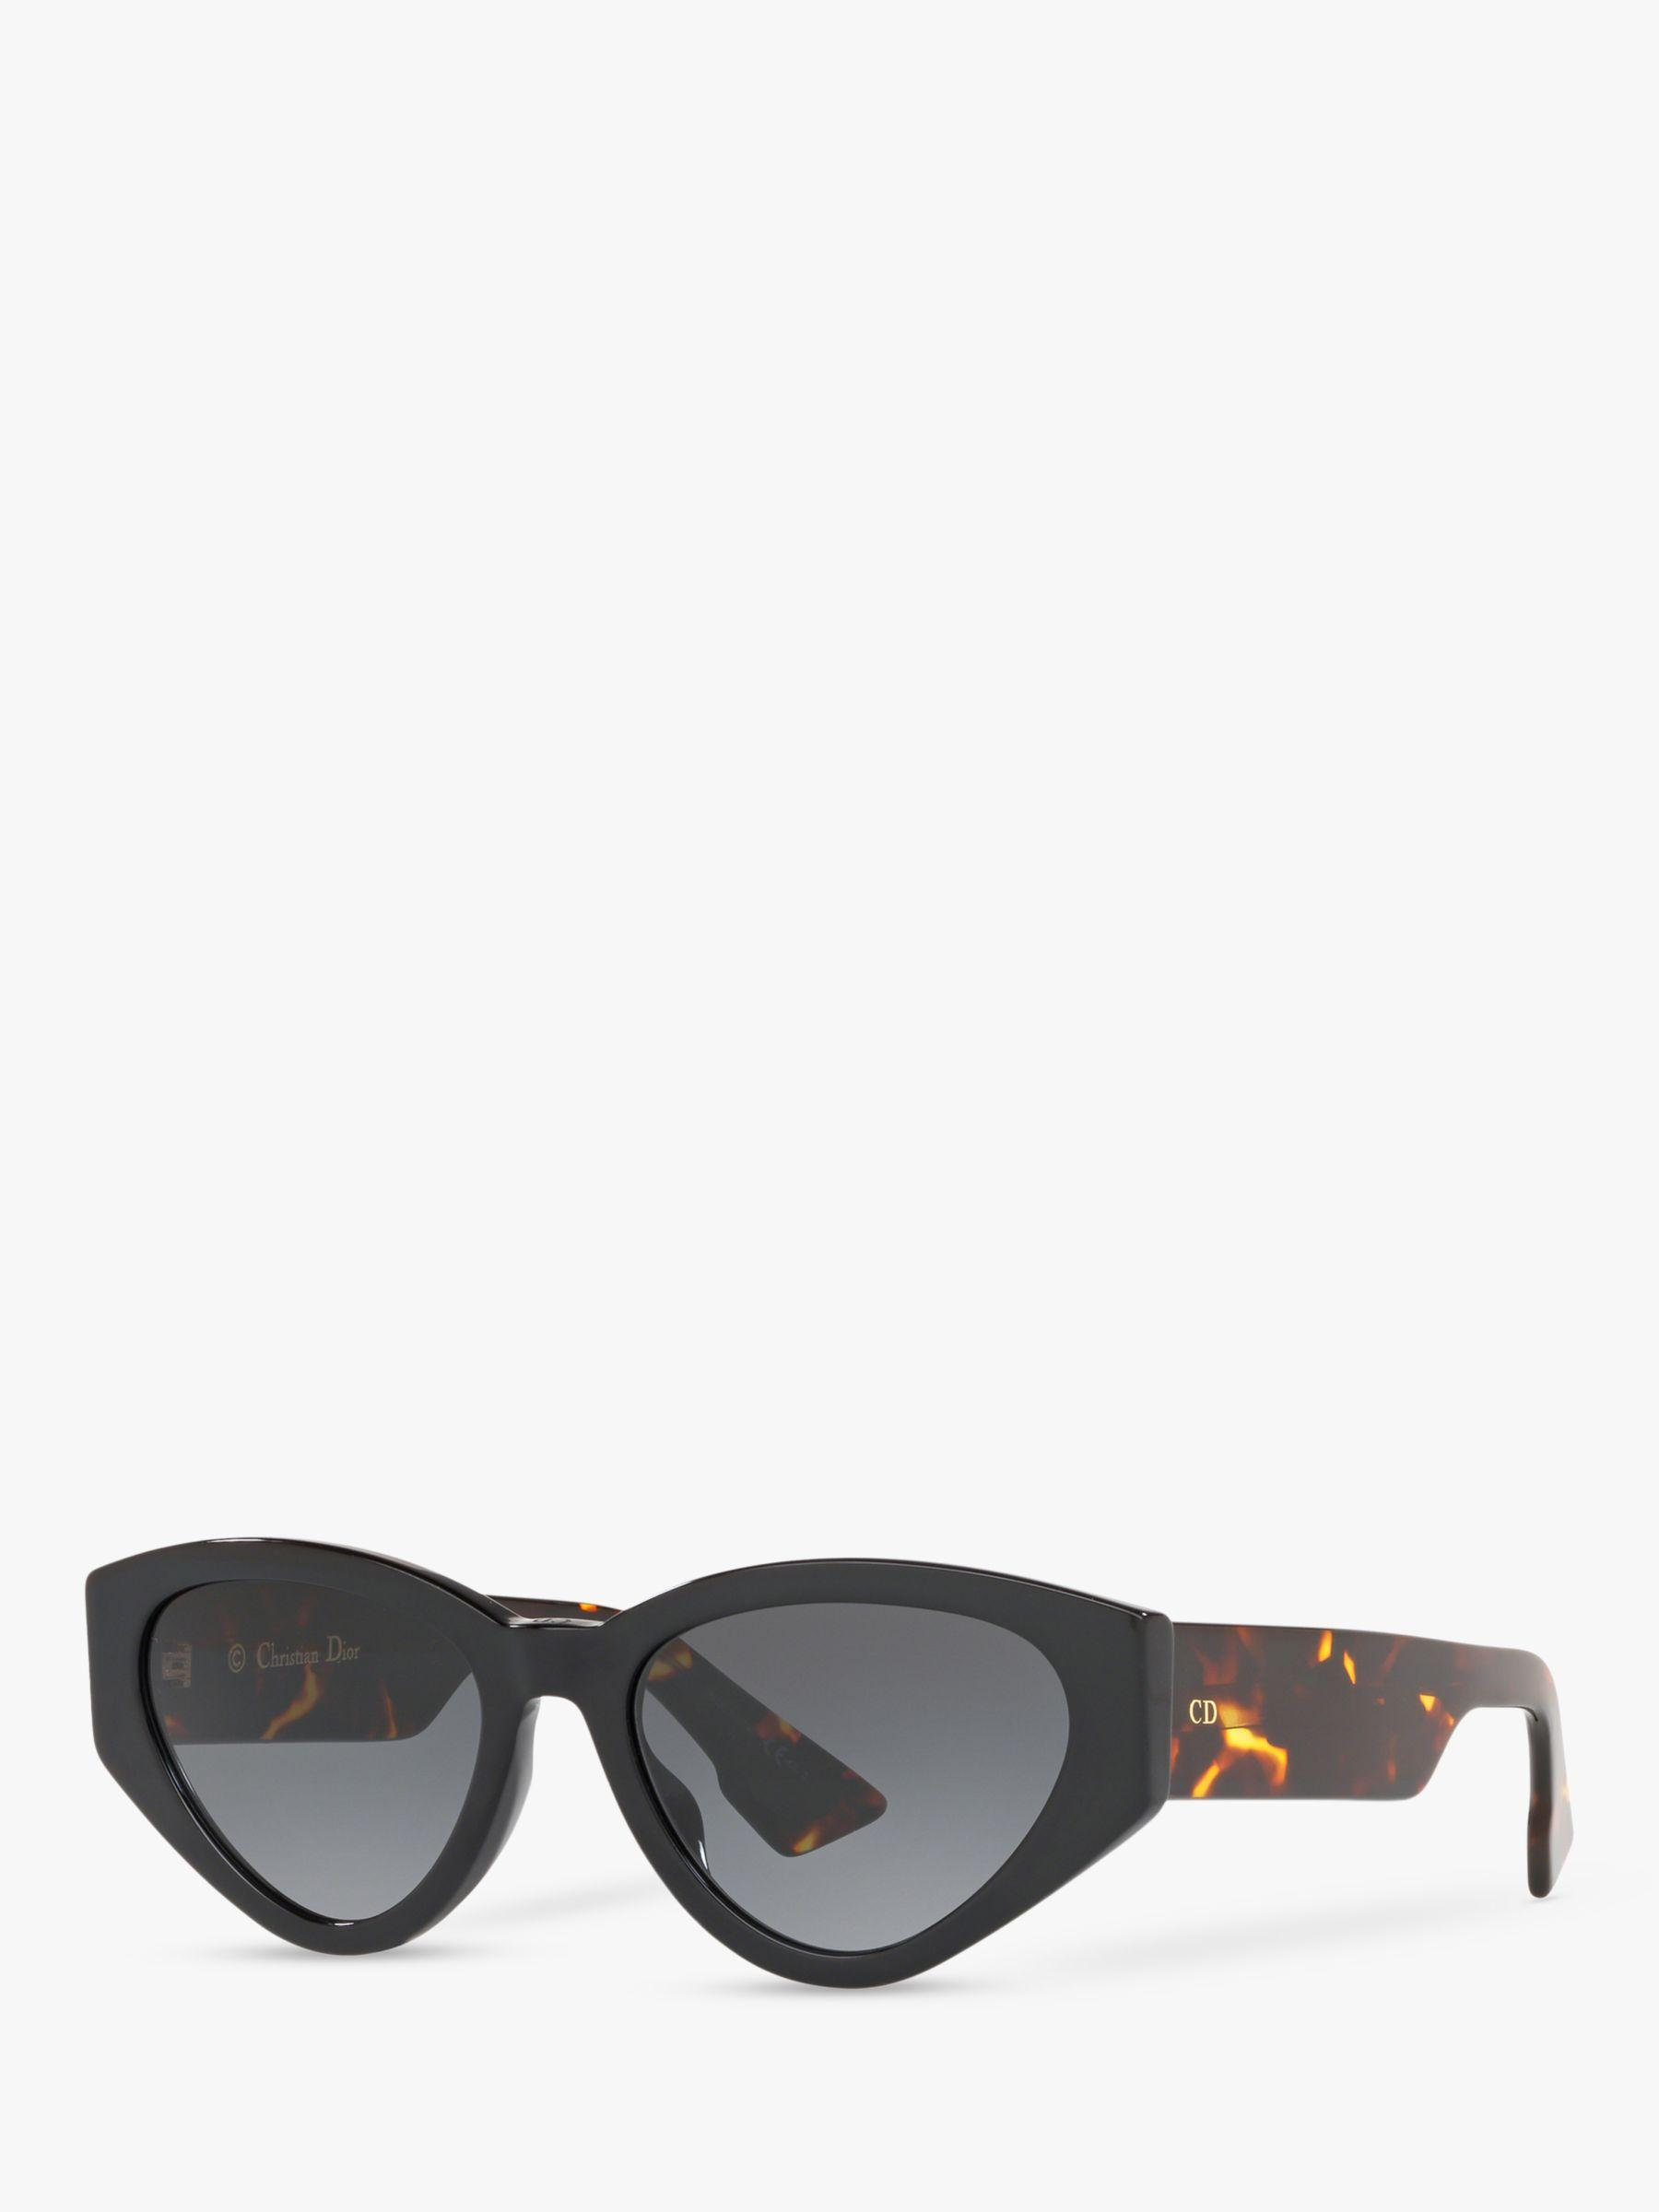 839bddb9da Dior. Black Spirit2 Women s Cat s Eye Sunglasses. £239 From John Lewis and  Partners